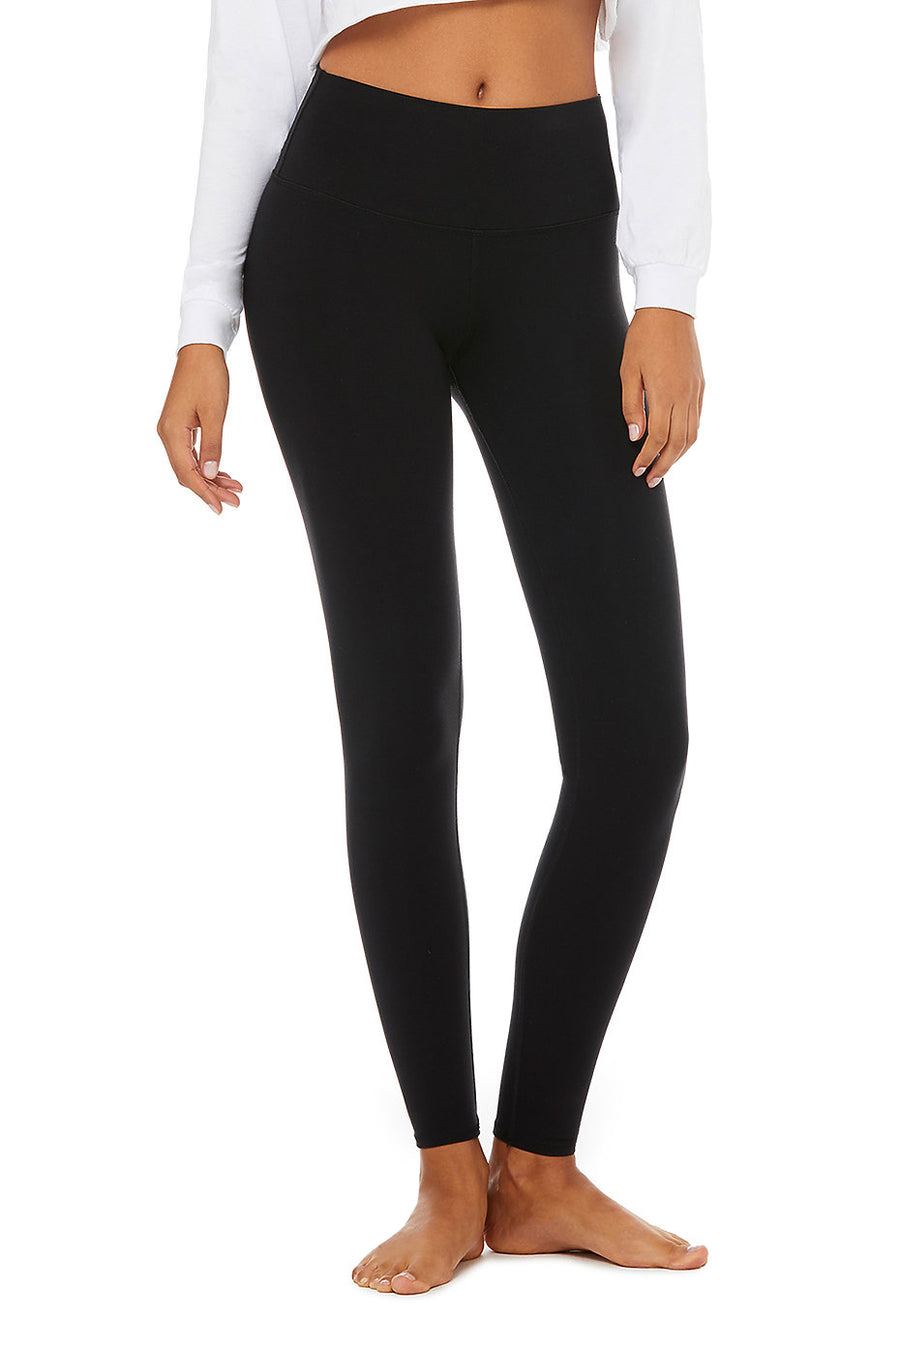 Sevenly Performance High Waisted Legging